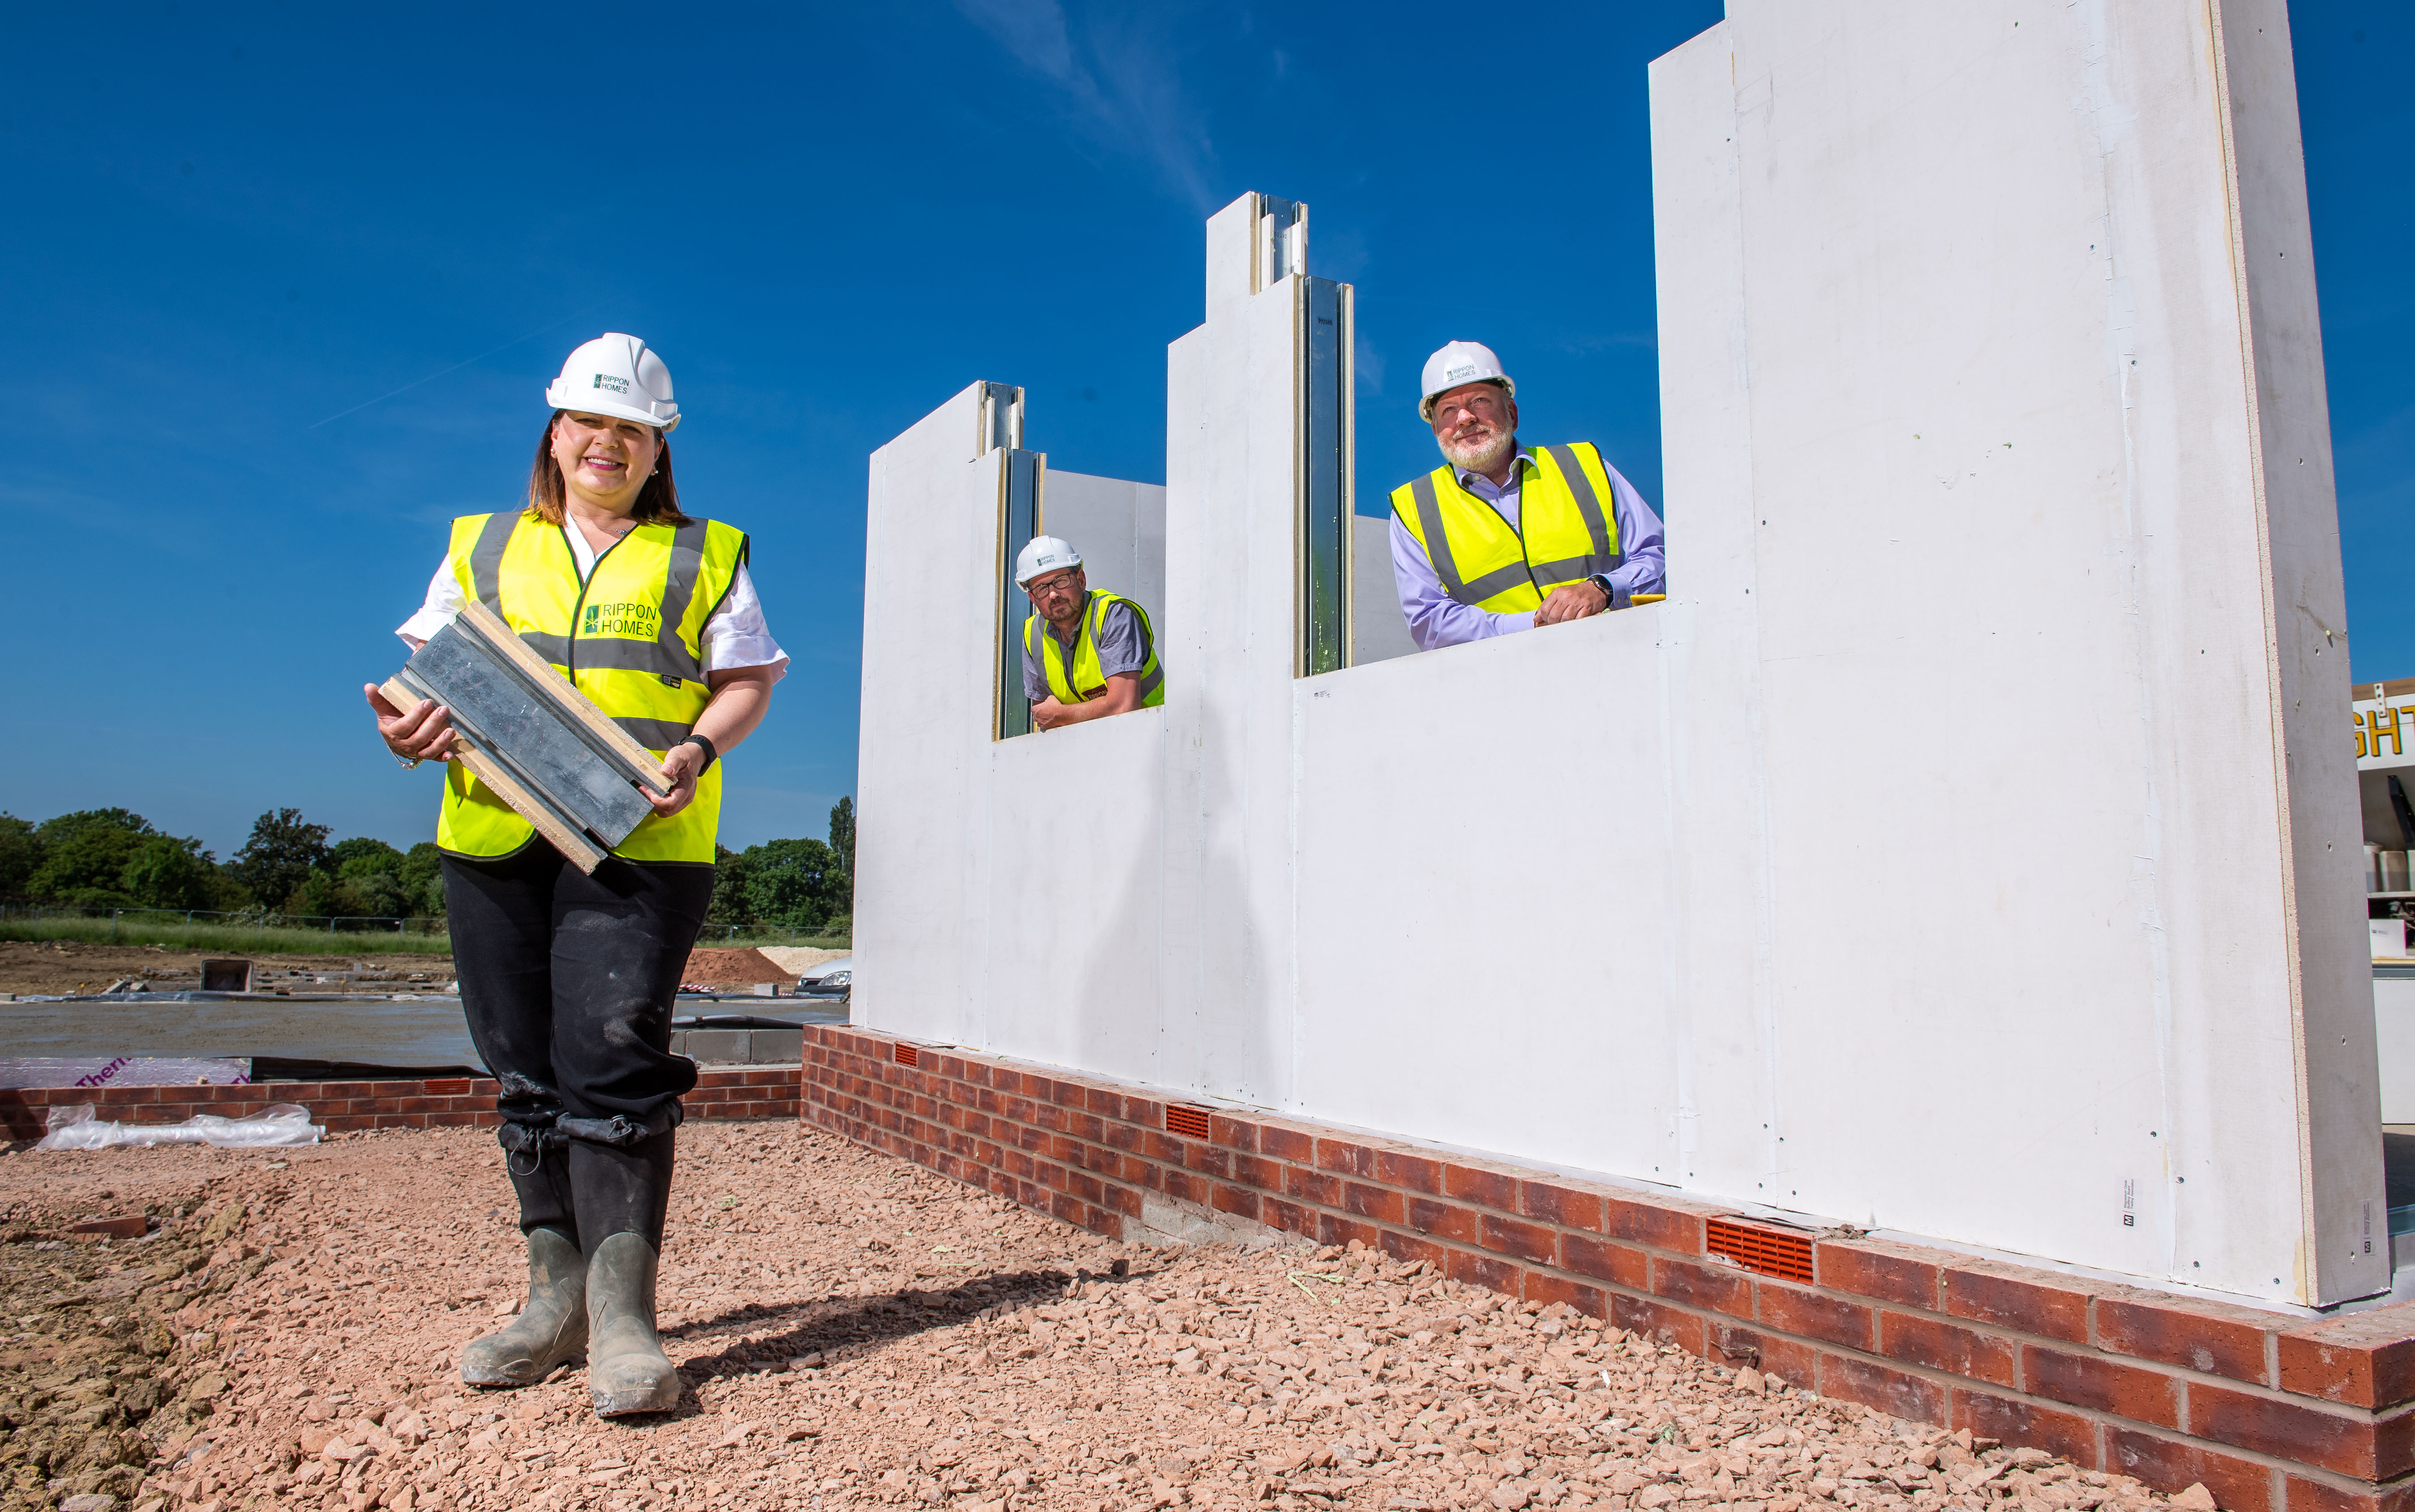 Work starts on low carbon homes in Leicestershire village